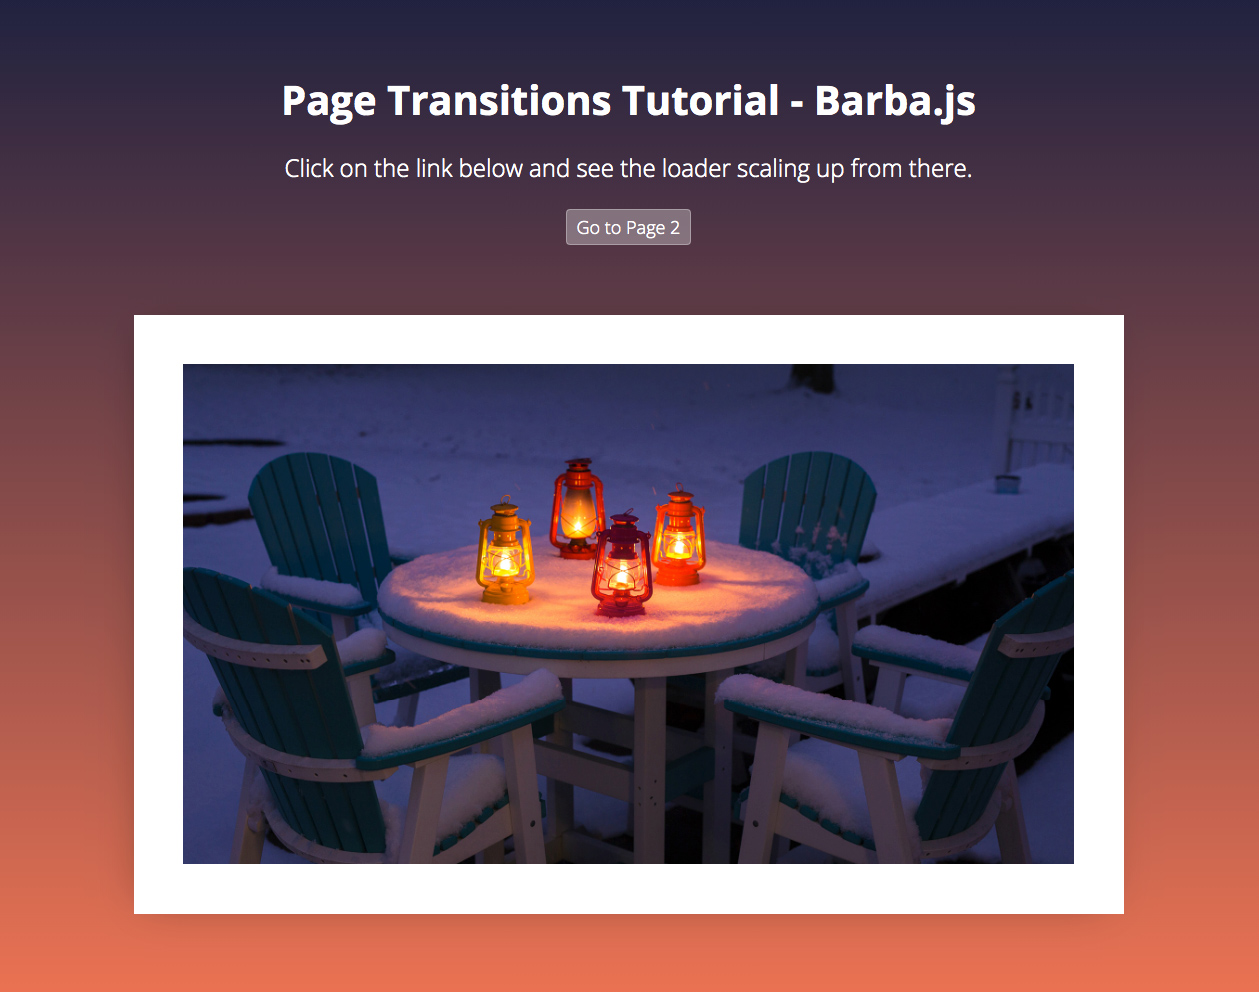 Page Transitions Tutorial